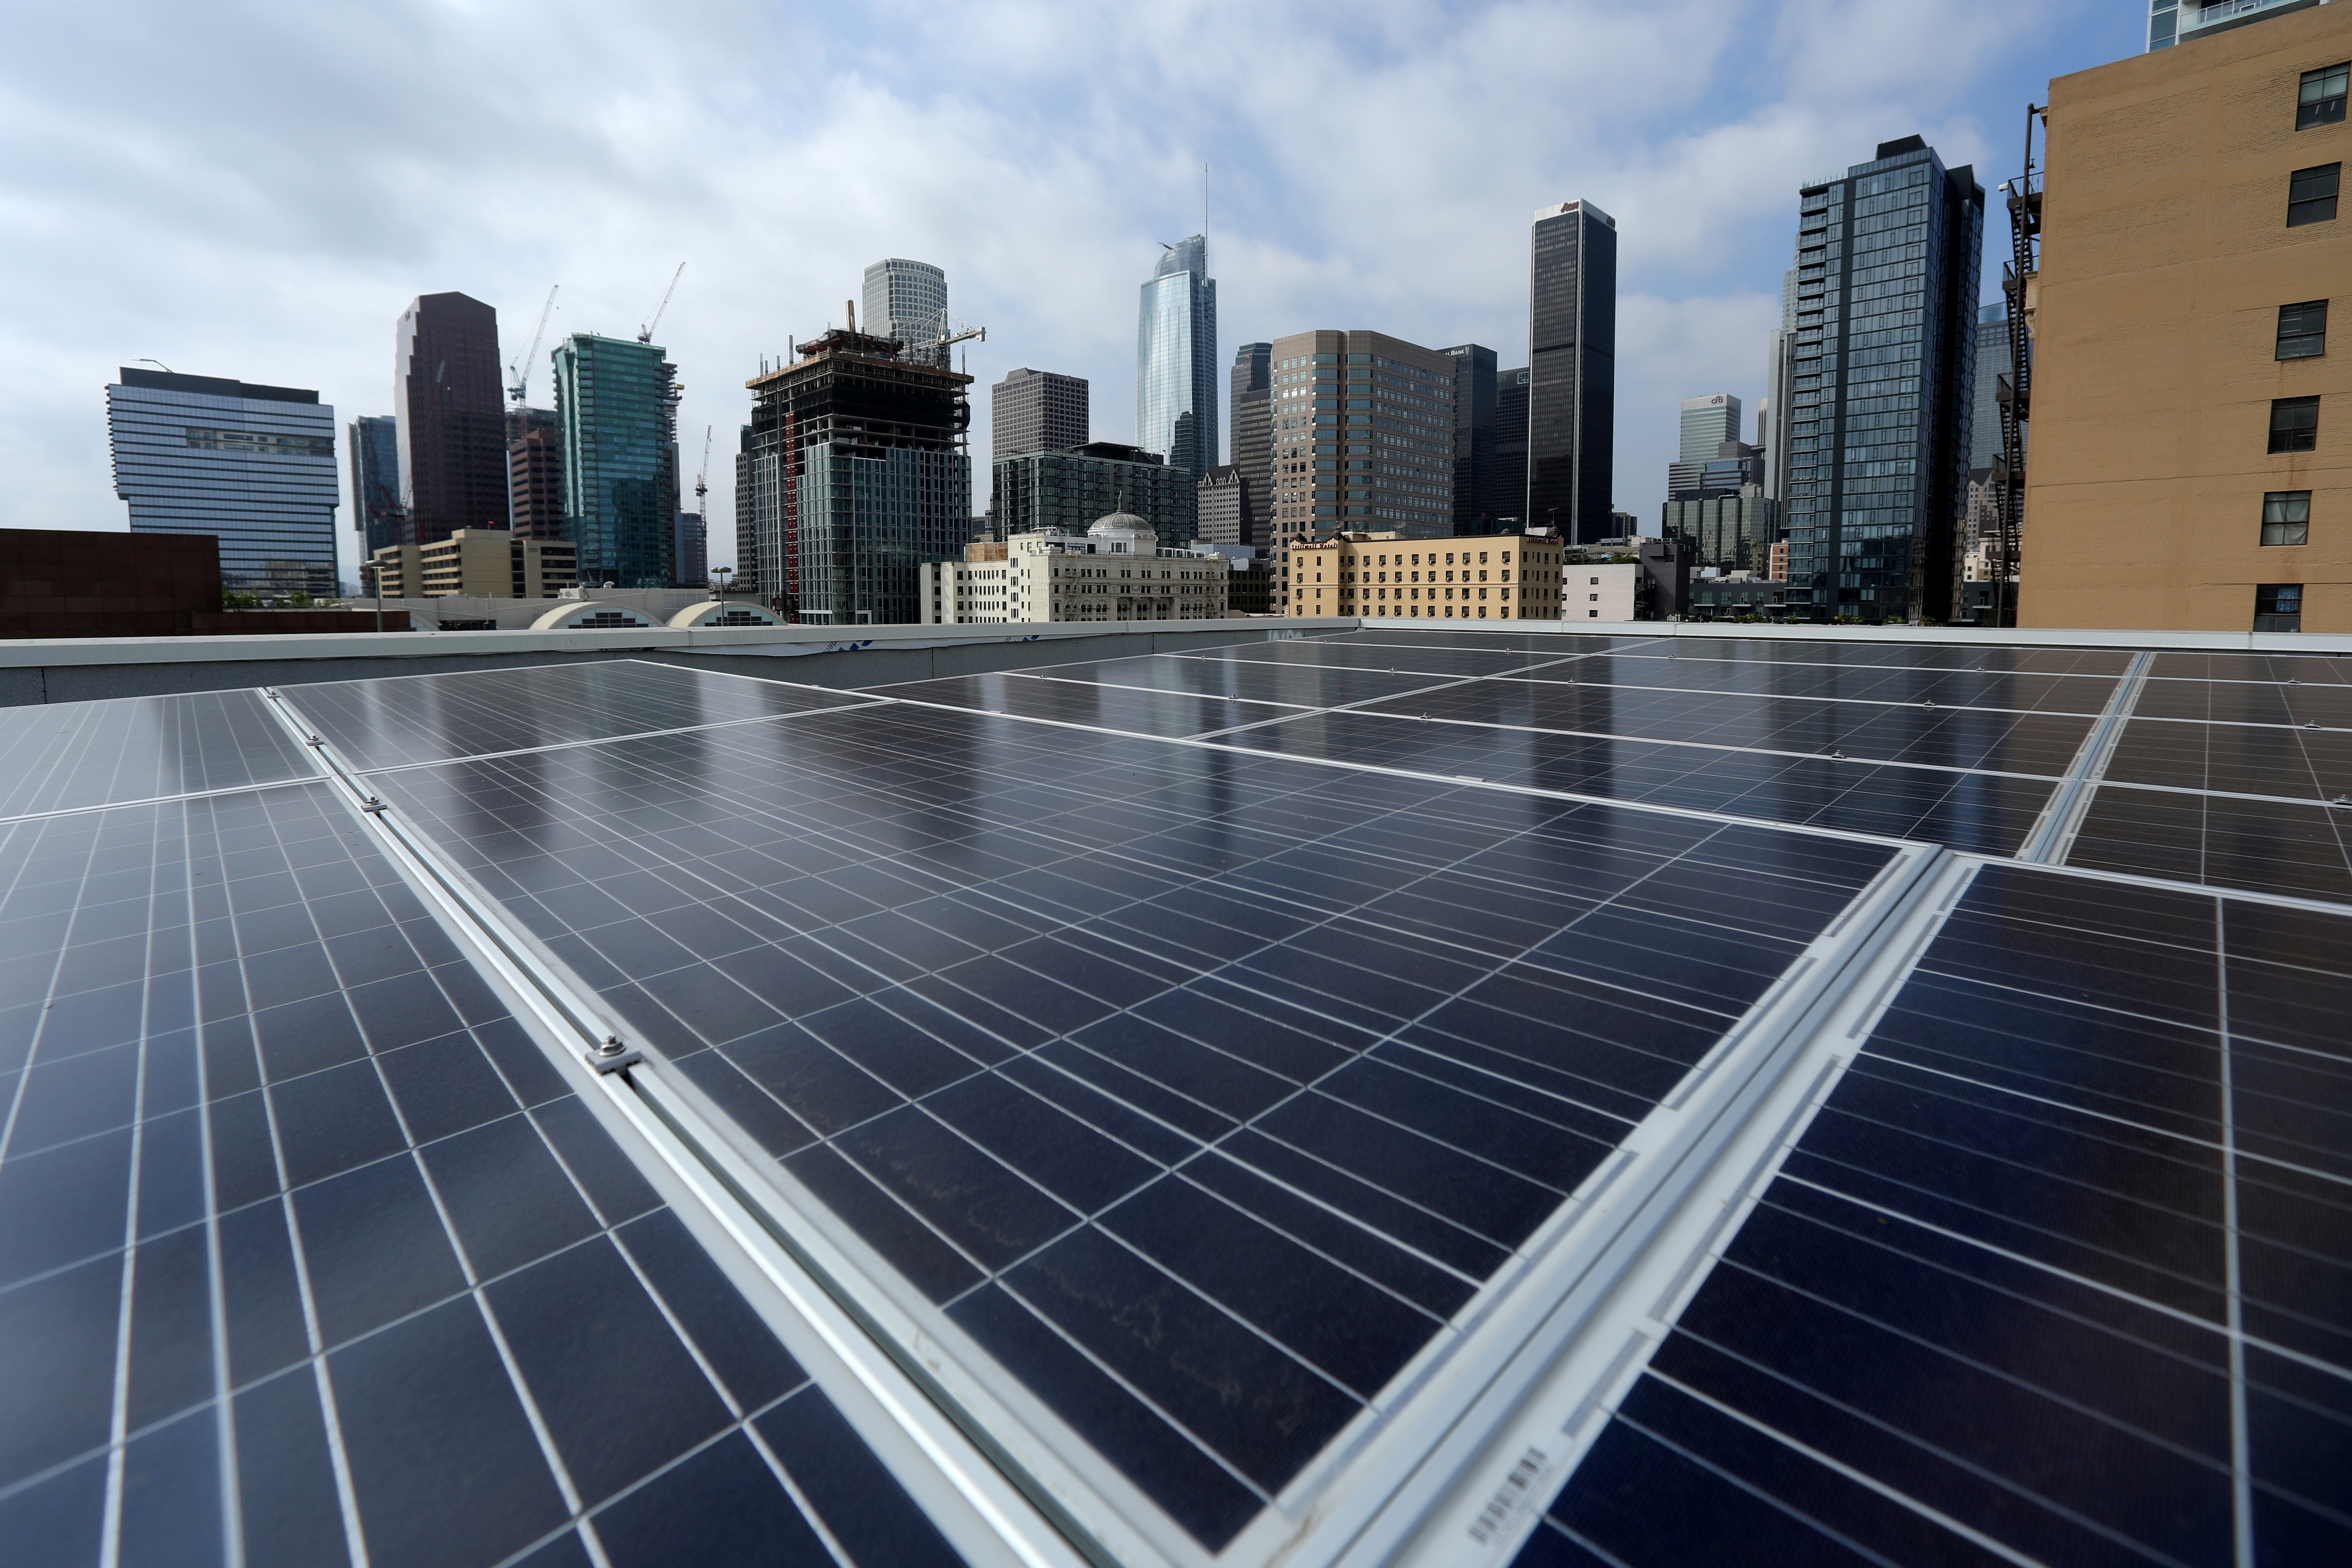 U.S. solar installation outlook brightens on falling costs: report